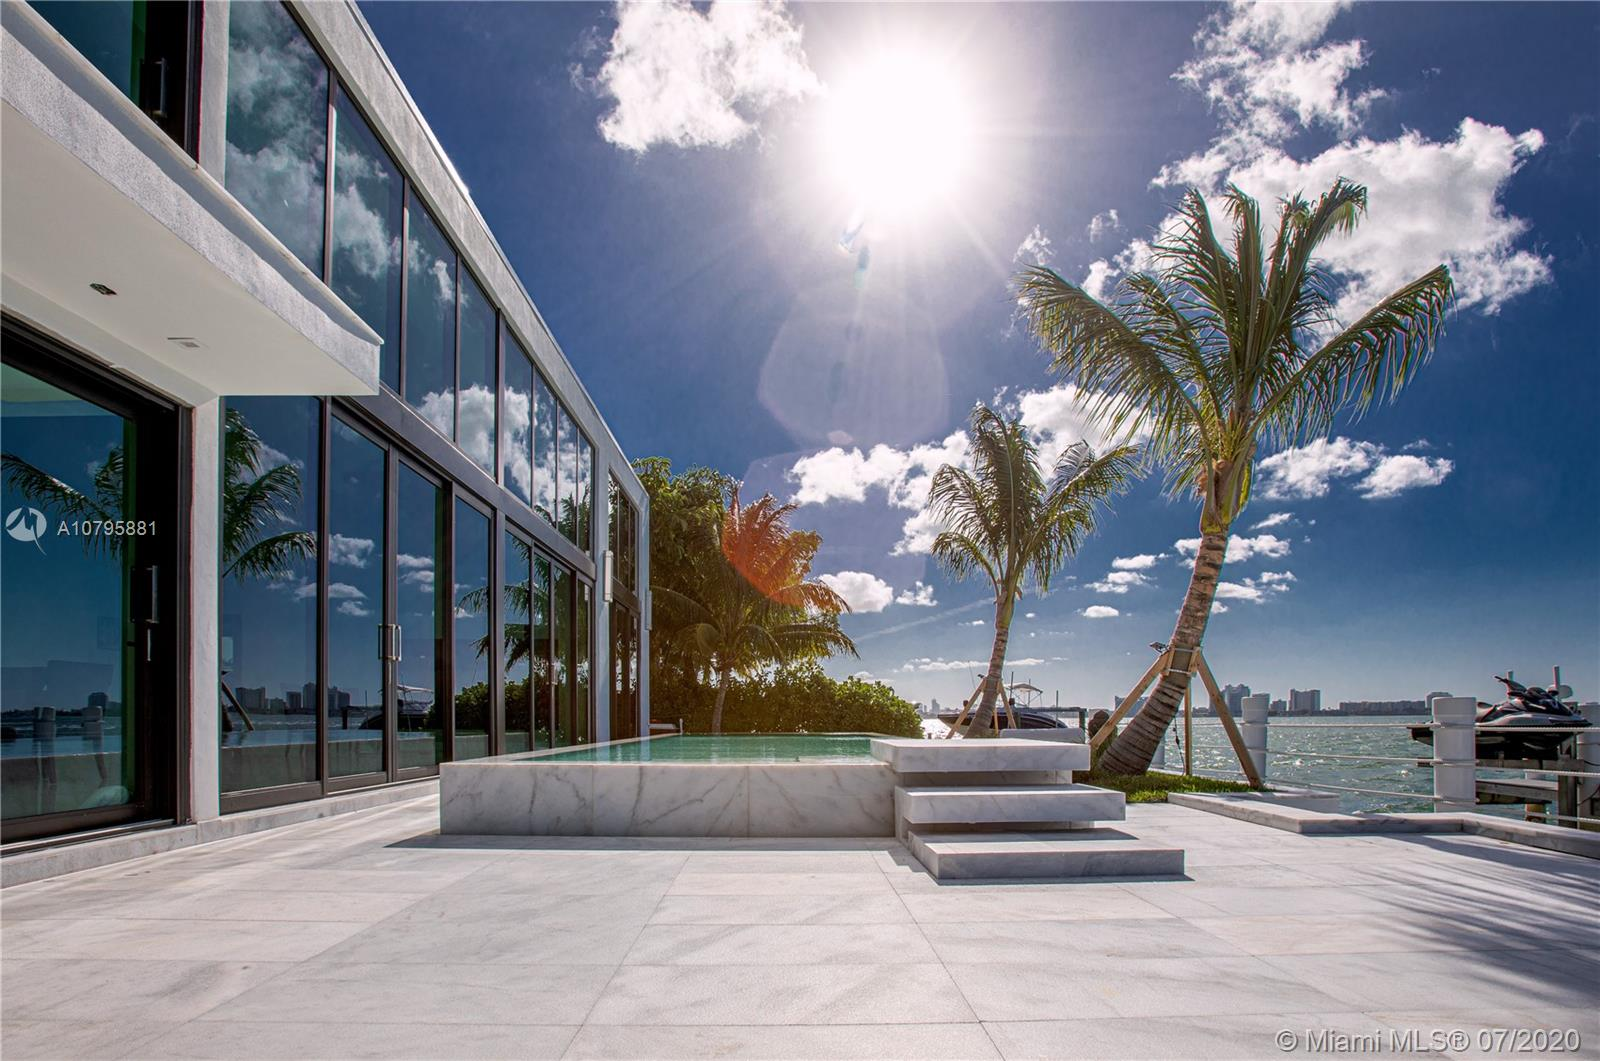 Extraordinary brand new 6,900 Sq Ft mansion located on the edge of the exclusive island gated community of Biscayne Point in M.B.This splendid home offers 22Ft ceiling living area with stunning views of Biscayne Bay. 5 bedroom 5 and 1/2 bathroom 7000 sqft home of pure luxury. Imported marble floors throughout the living area and beautiful oak wood flooring in all of the bedrooms. This home features 2 stunning master suites, the main floor suite is over 2,500 sqft with 20 ft floor to ceiling windows . The second suite on the 2nd floor offers extraordinary 15ft skylight ceiling for those who want to sleep under the stars. Custom Italian kitchen with tops appliances.This homes sites on a 12,000 sqft lot and 102 ft of Biscayne Bay frontage. Enjoy beautiful sunsets from your infinity edge pool.